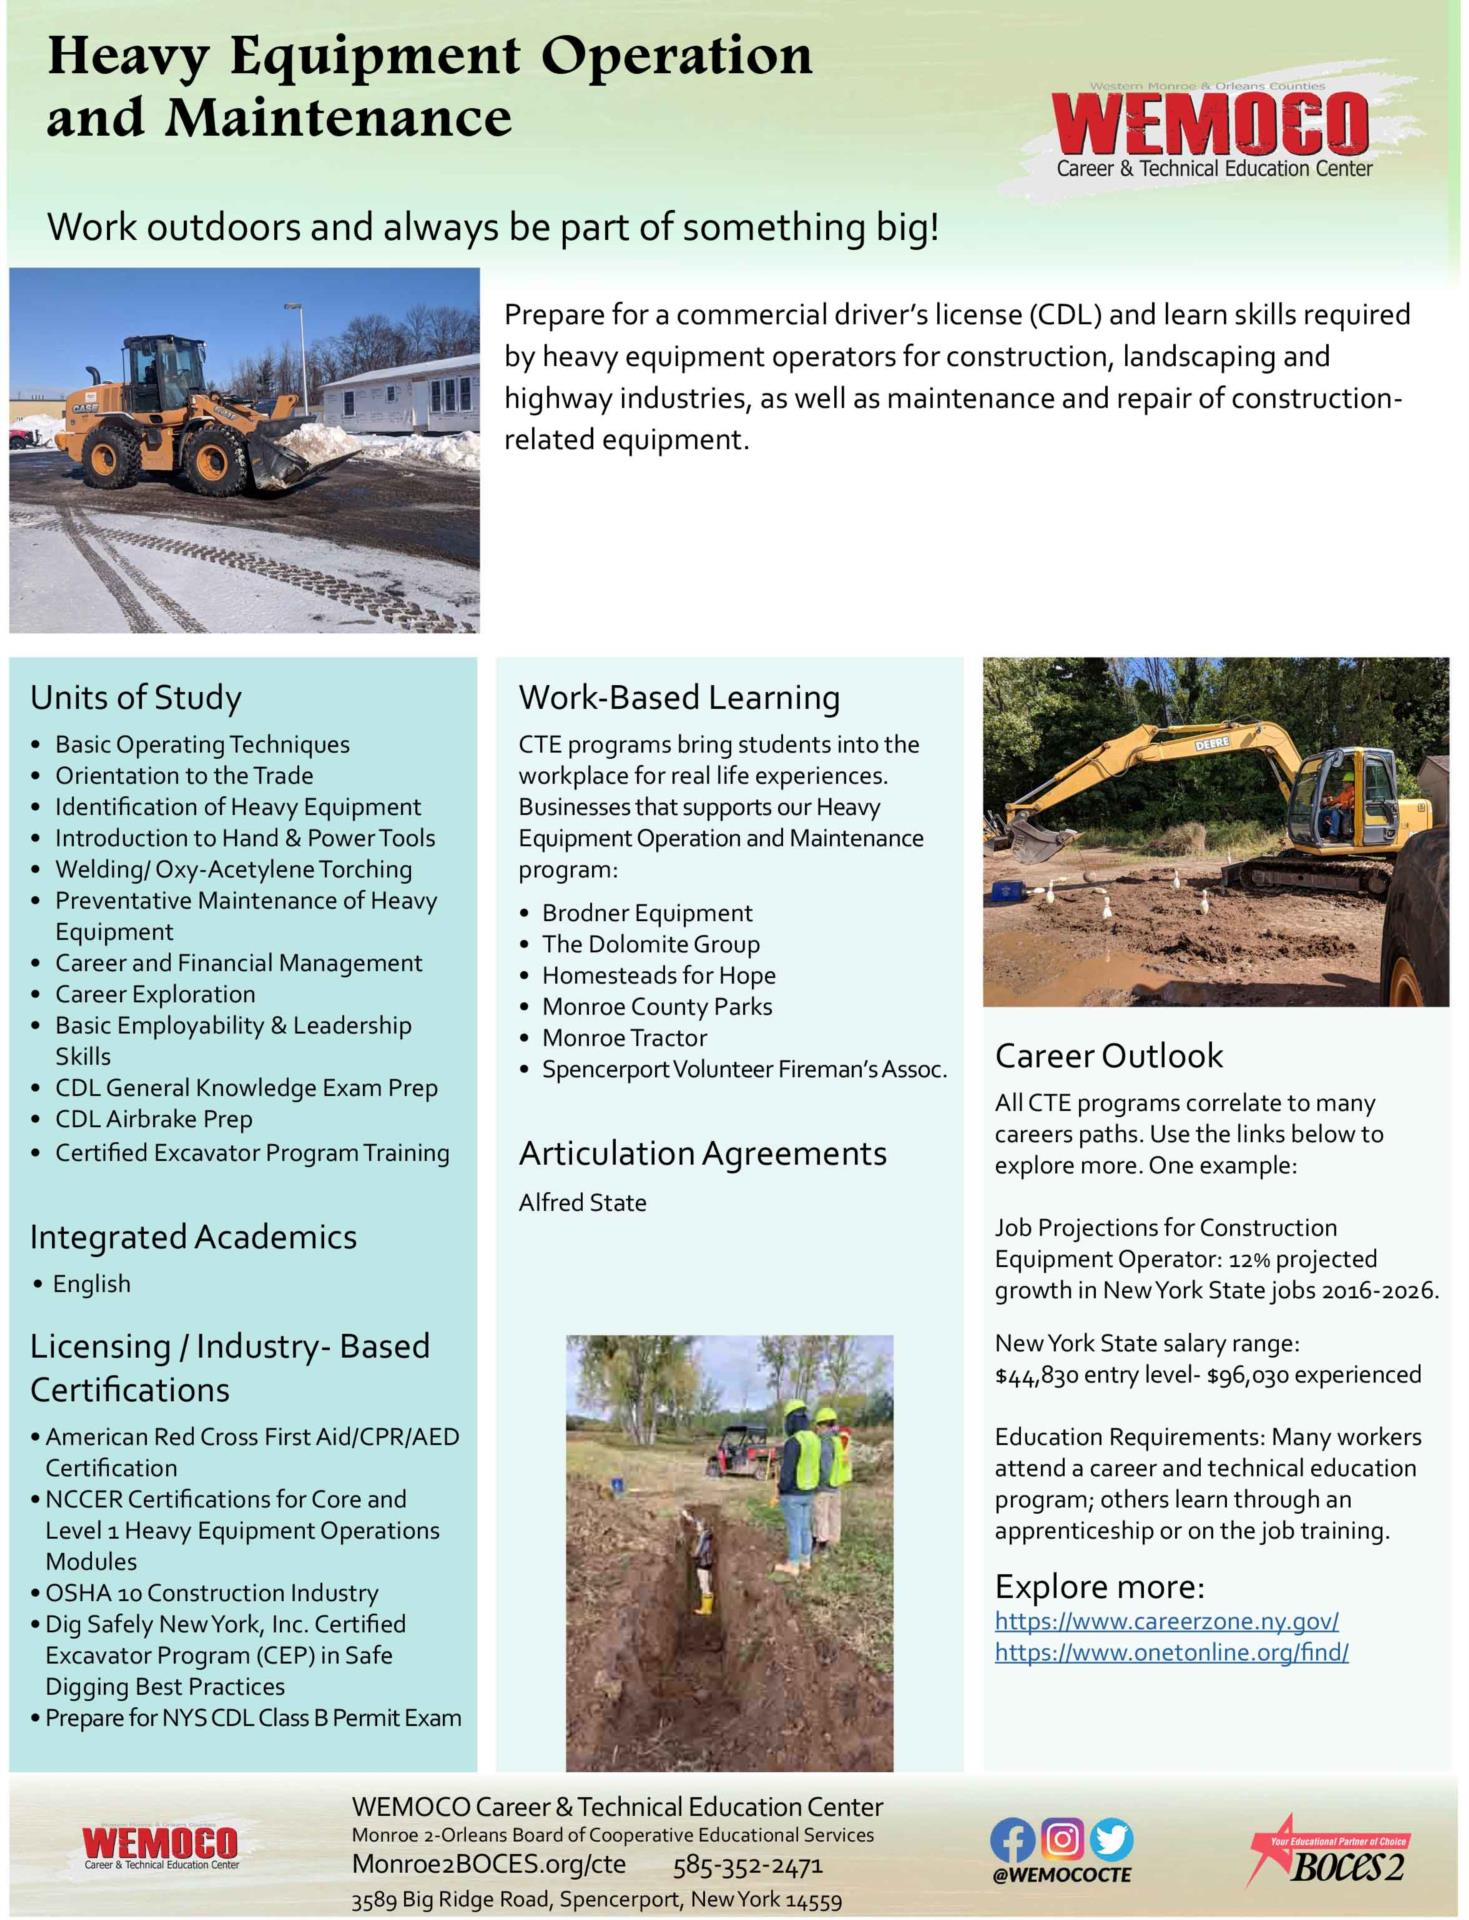 Download a PDF overview of the Heavy Equipment Operation and Maintenance program information